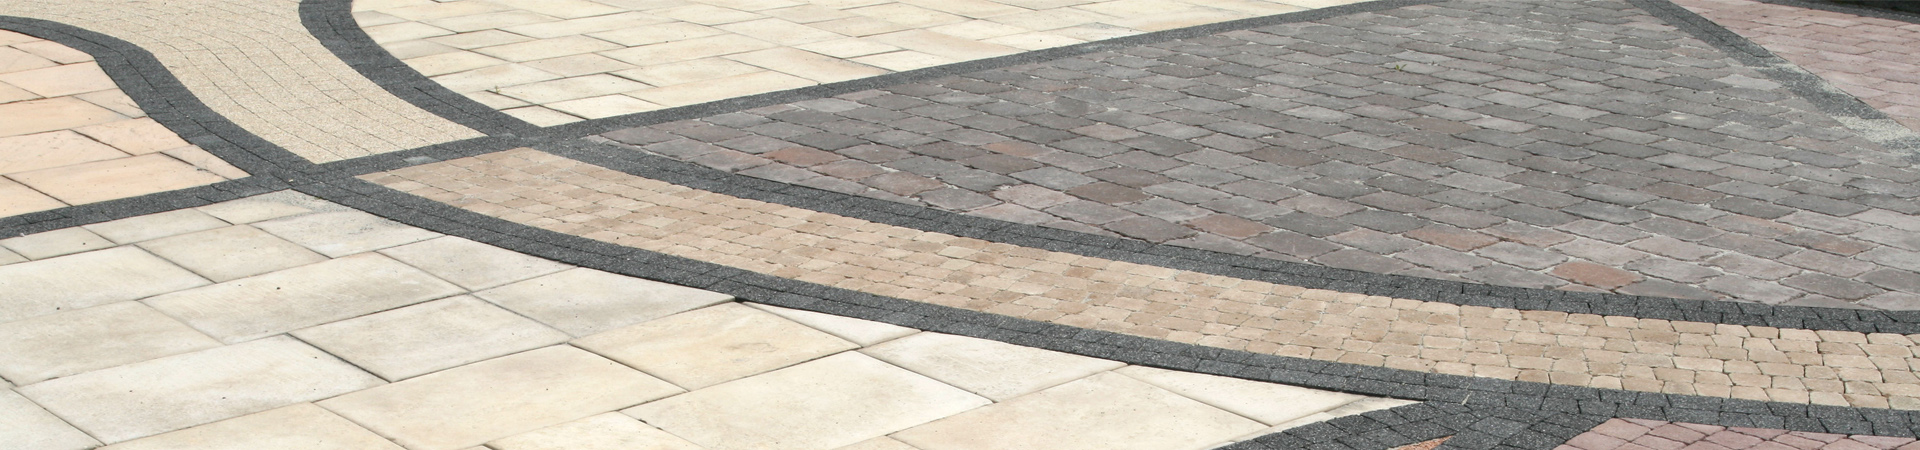 Block paving in Epping. Essex